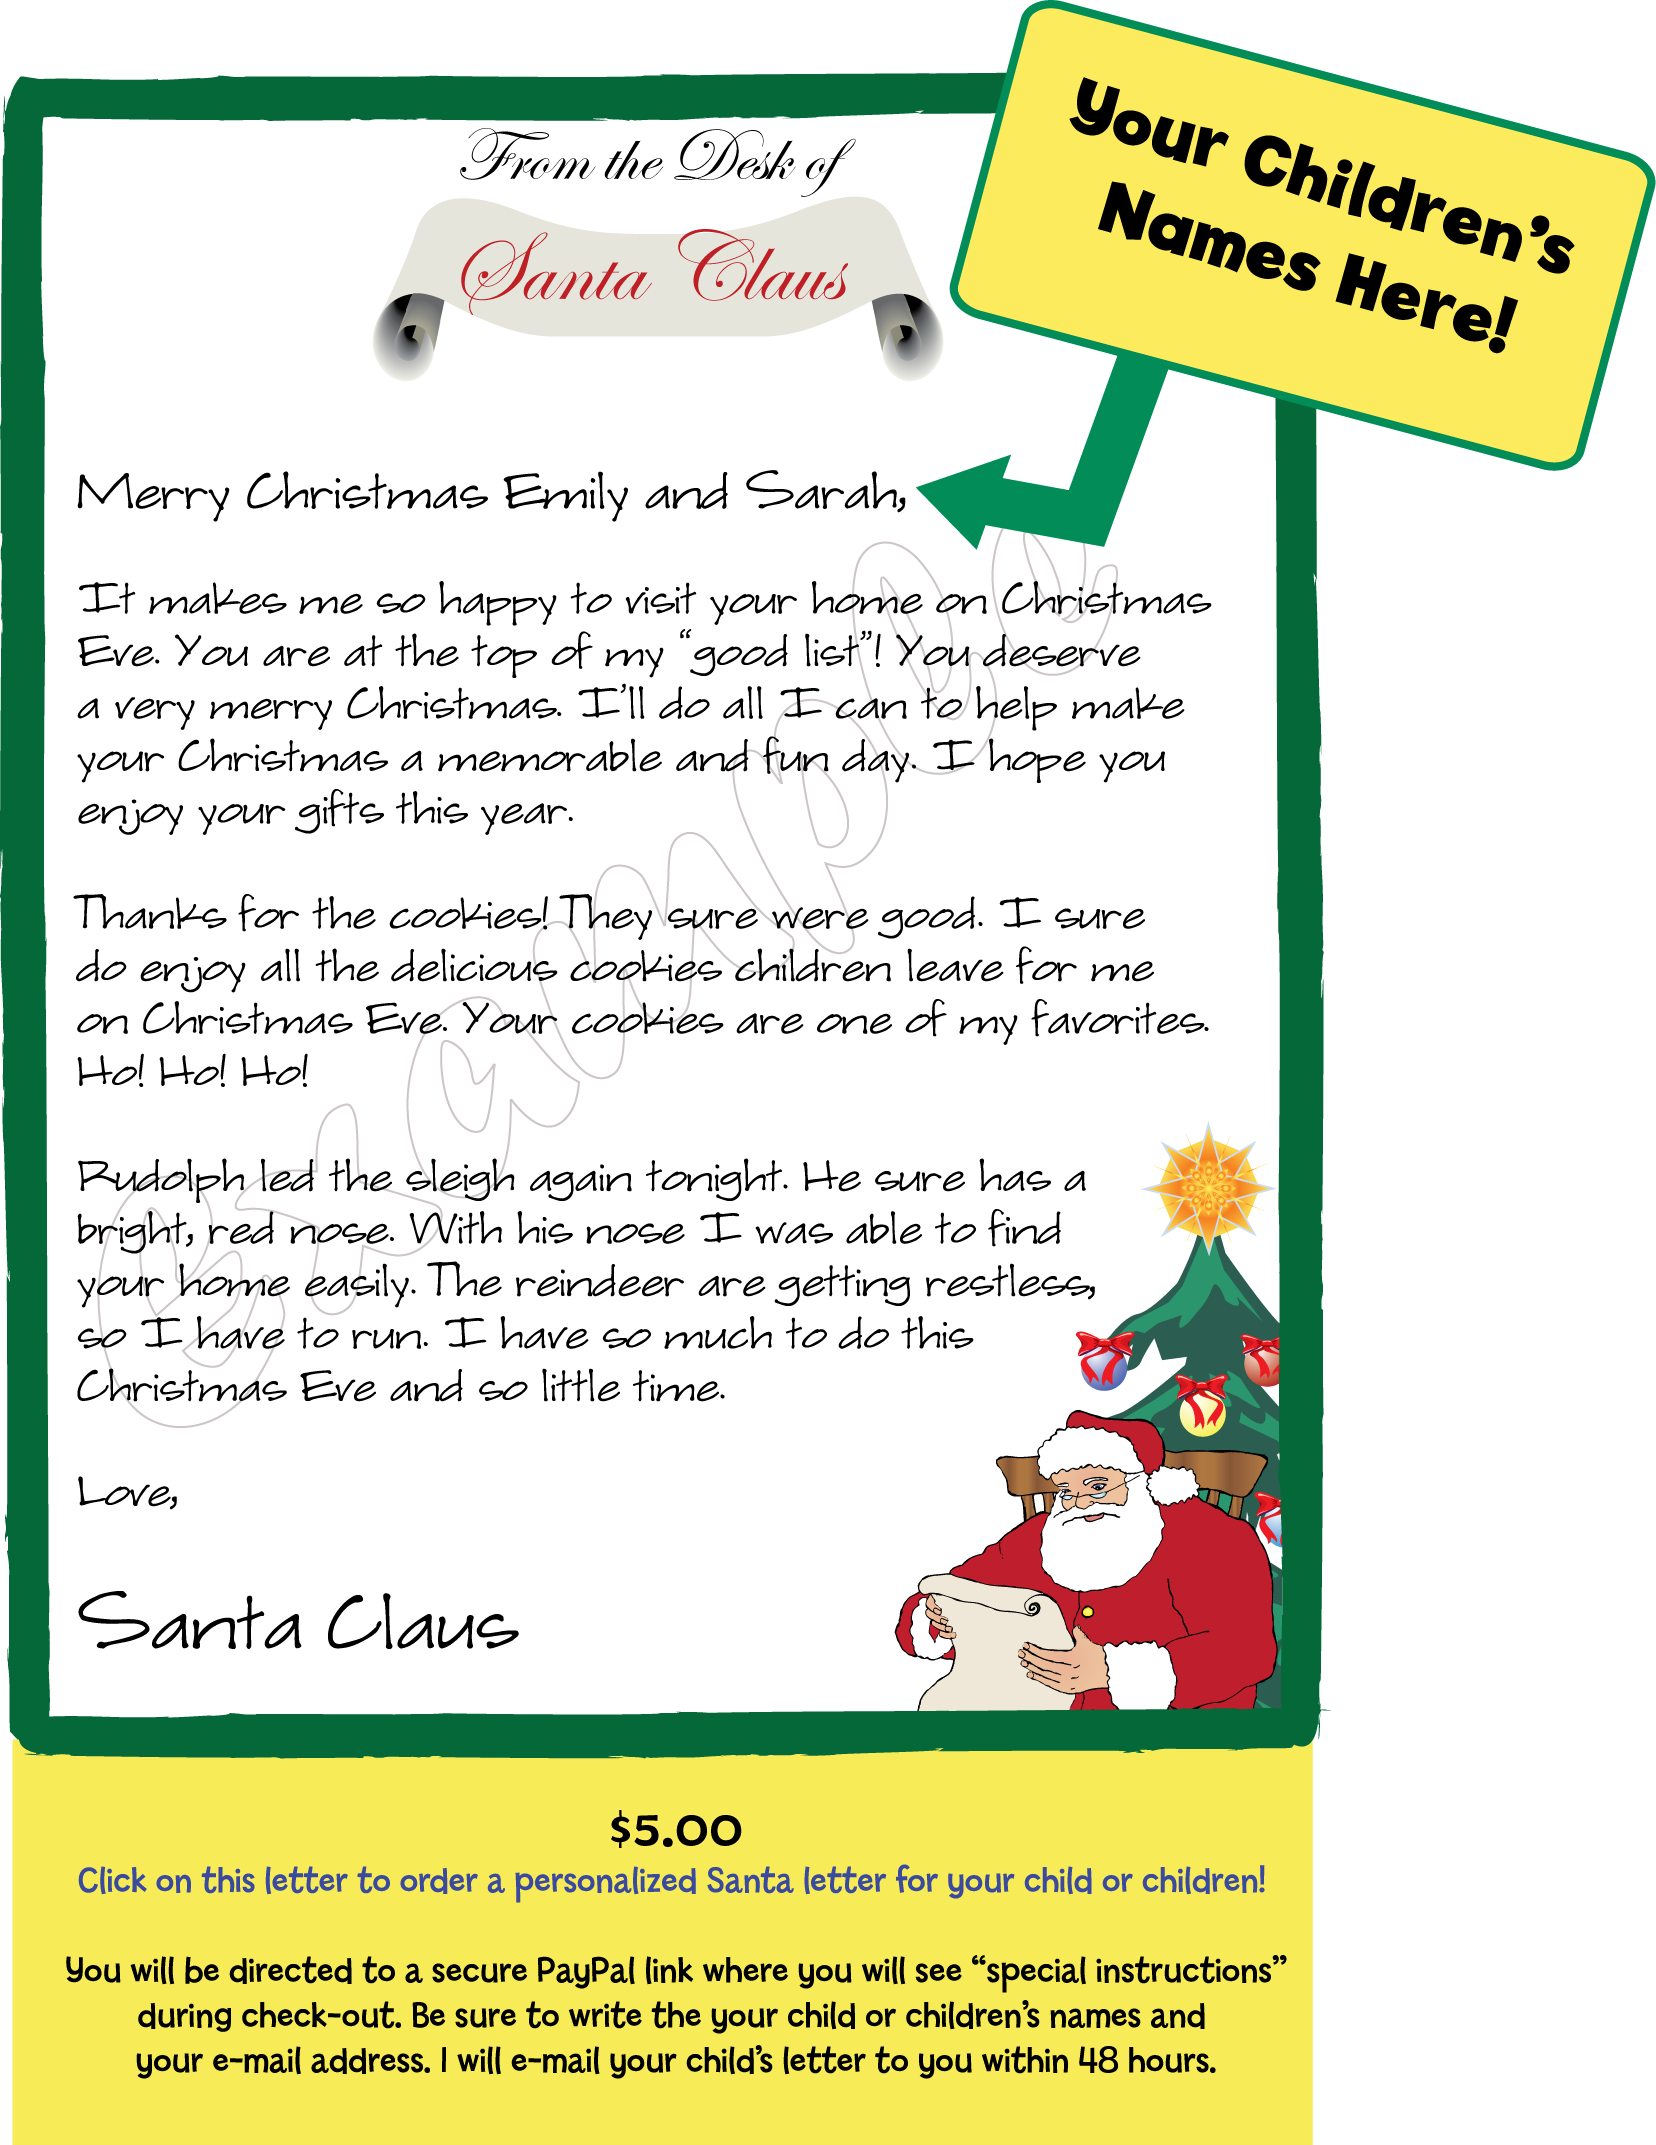 Letter-Writing: Letters to Santa